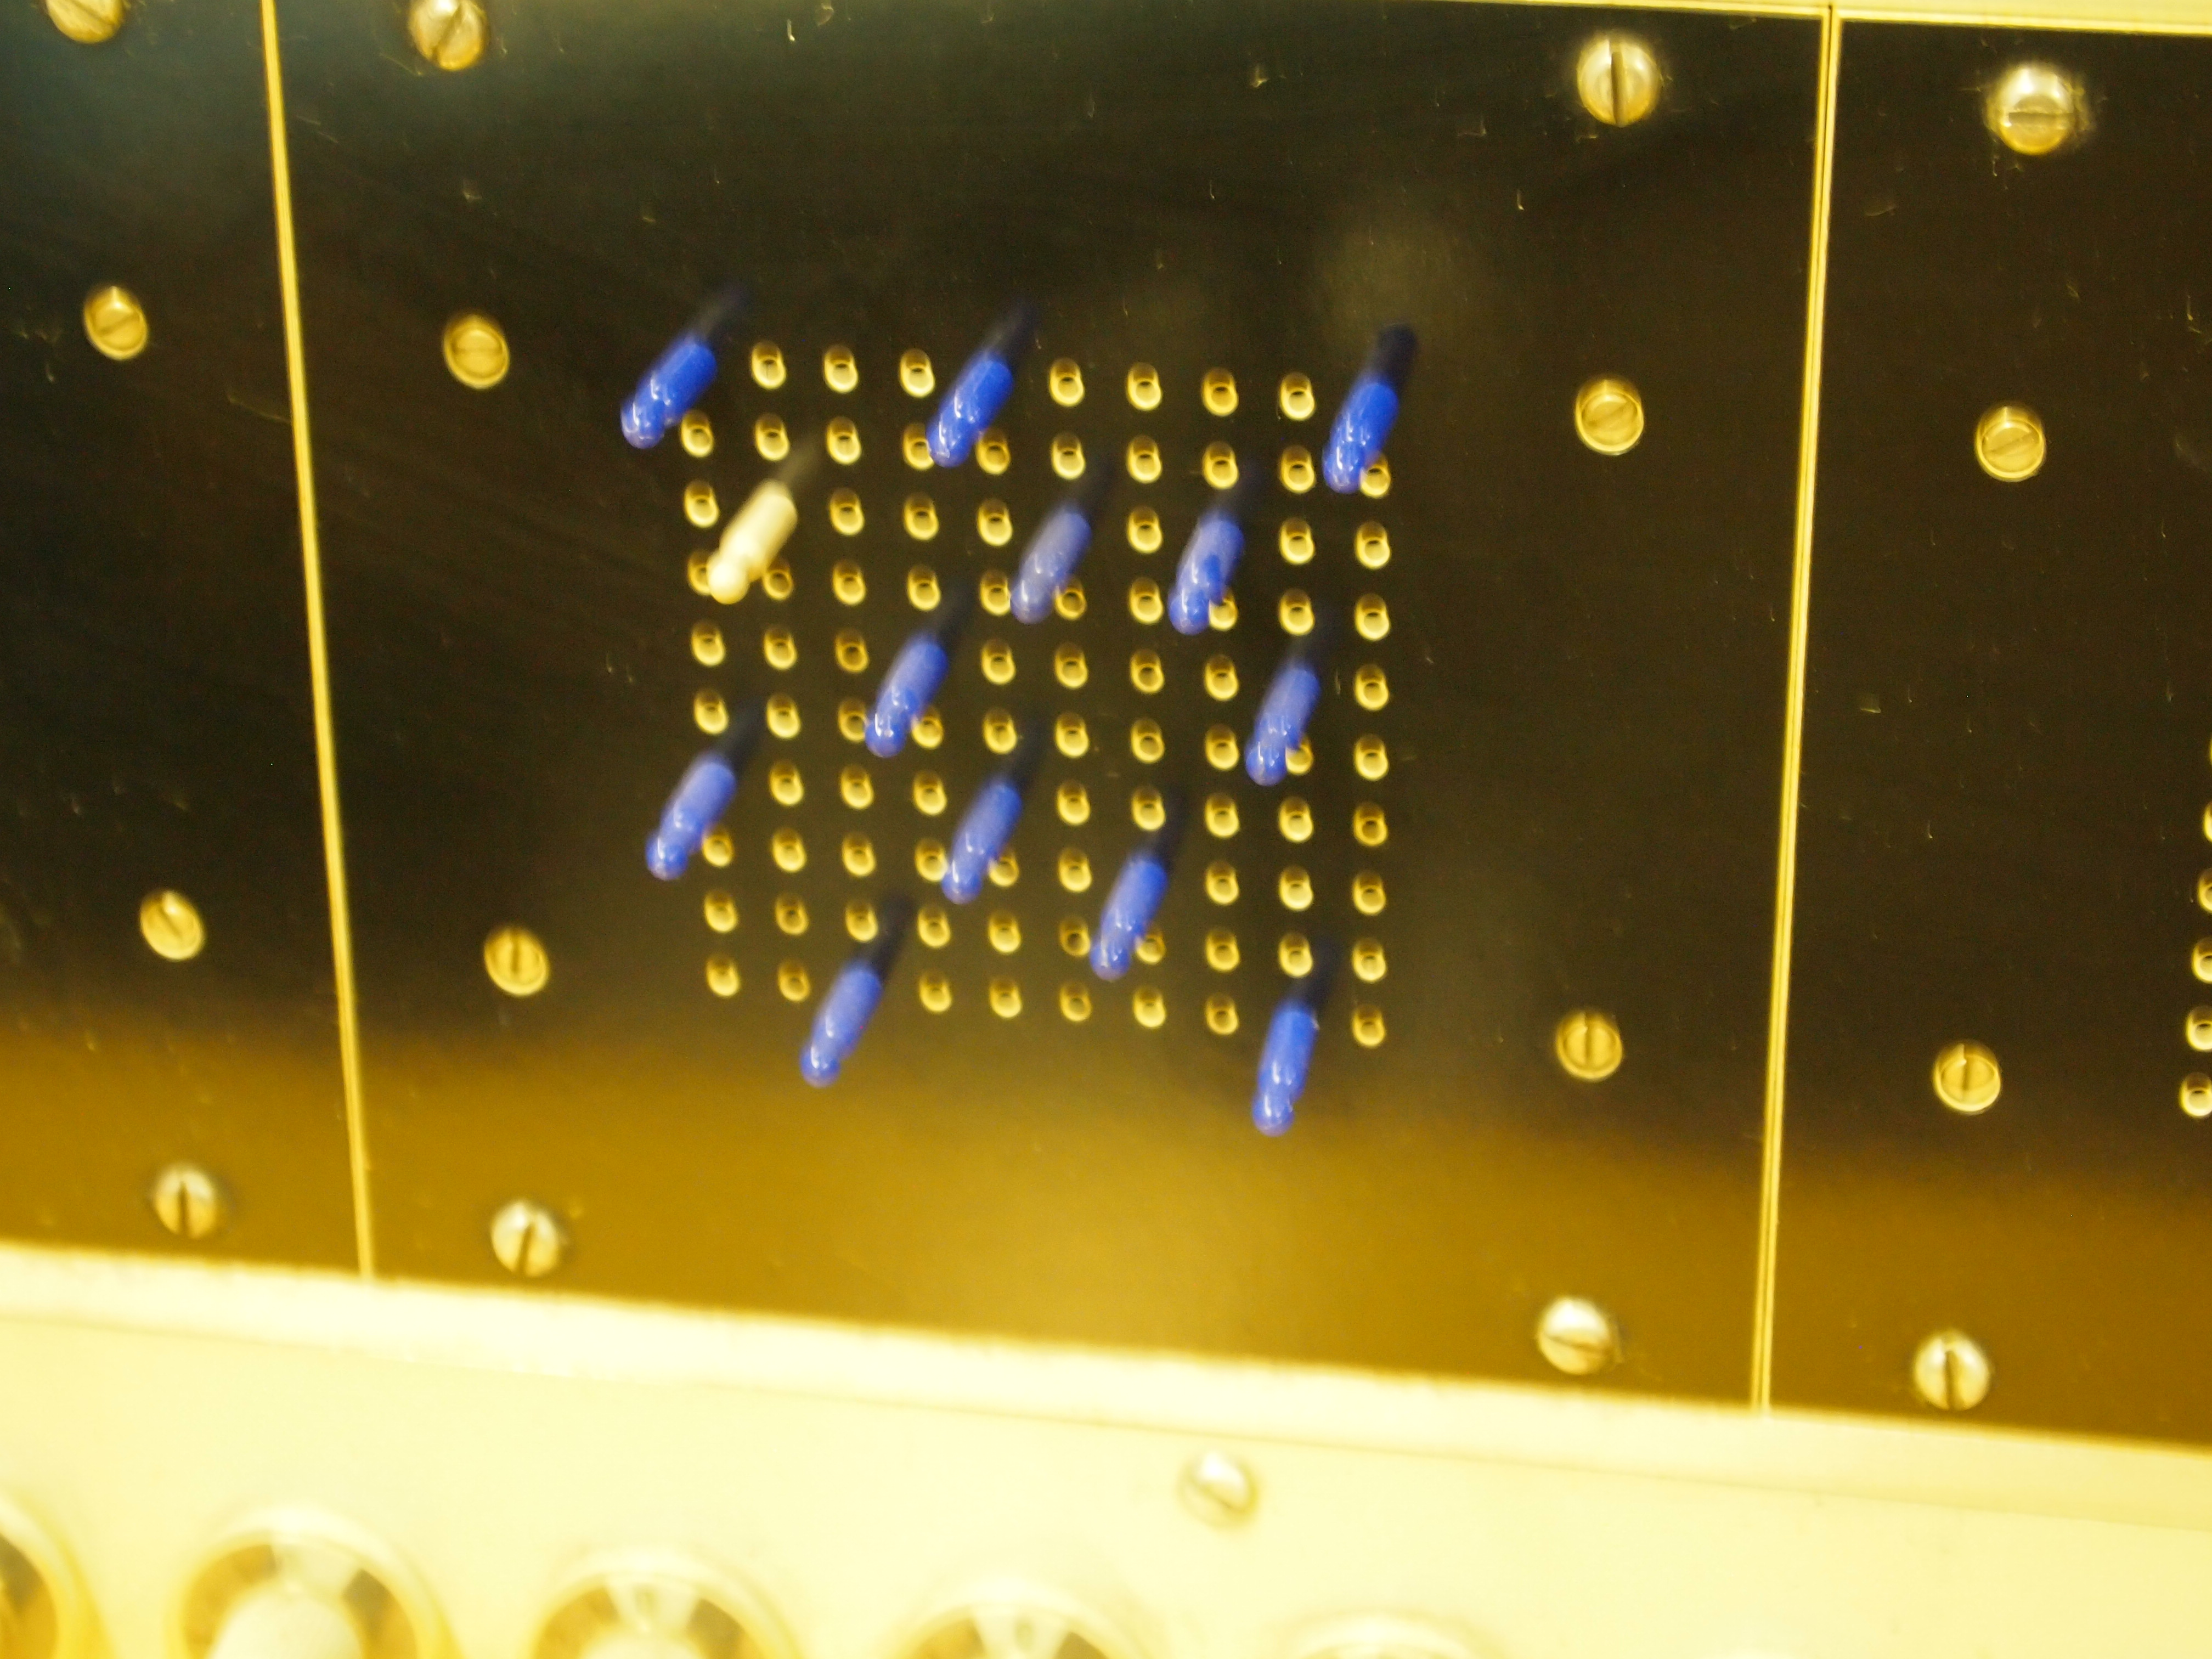 Kurenniemi Instrument from the 1960s, Part of a 3 unit synthsizer